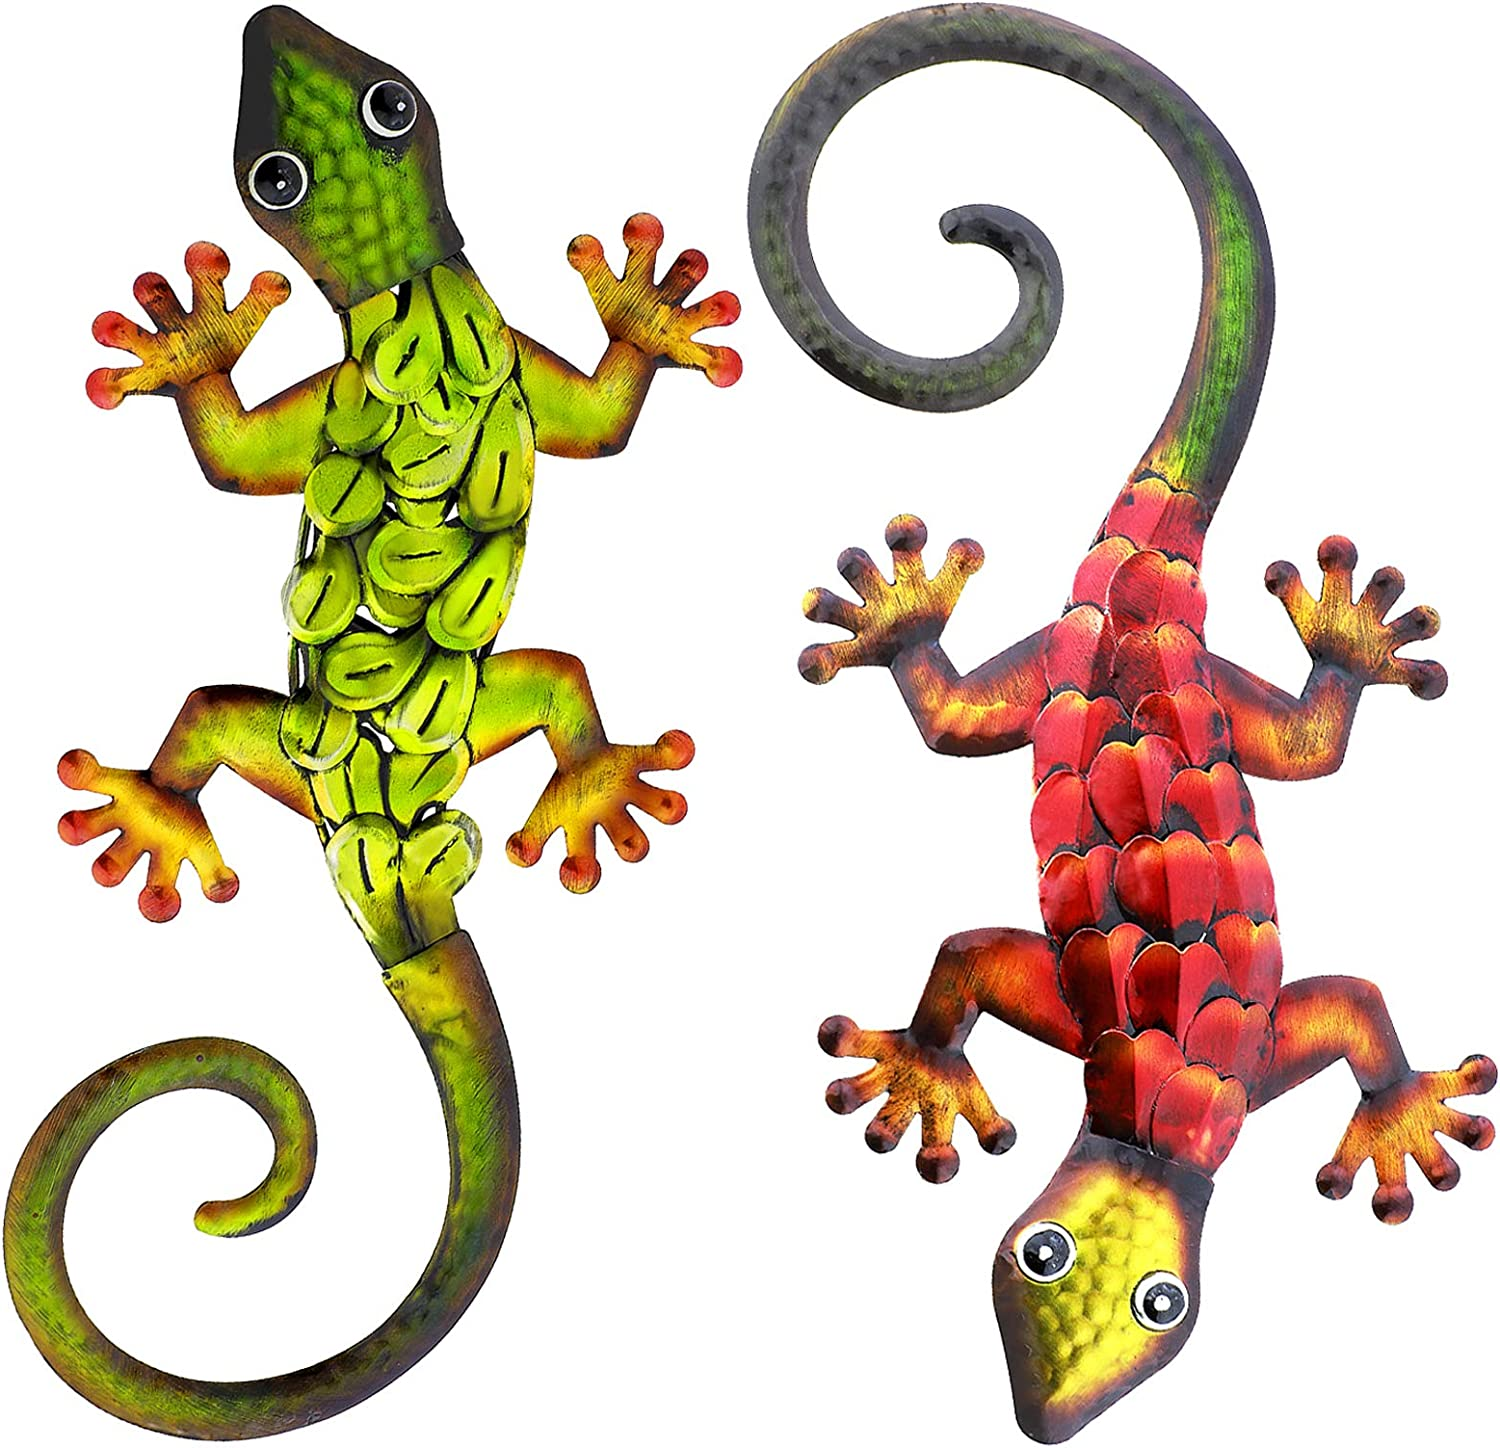 aboxoo 2PCS Metal Gecko Set Wall Decor Large Lizard Sculpture Crafts Inspirational Statue Hanging Art Decoration Ornaments for Outdoor Yard Fence Room Bedroom Kitchen Bathroom Garden Children'S Toy Life Gift (Red, Green)